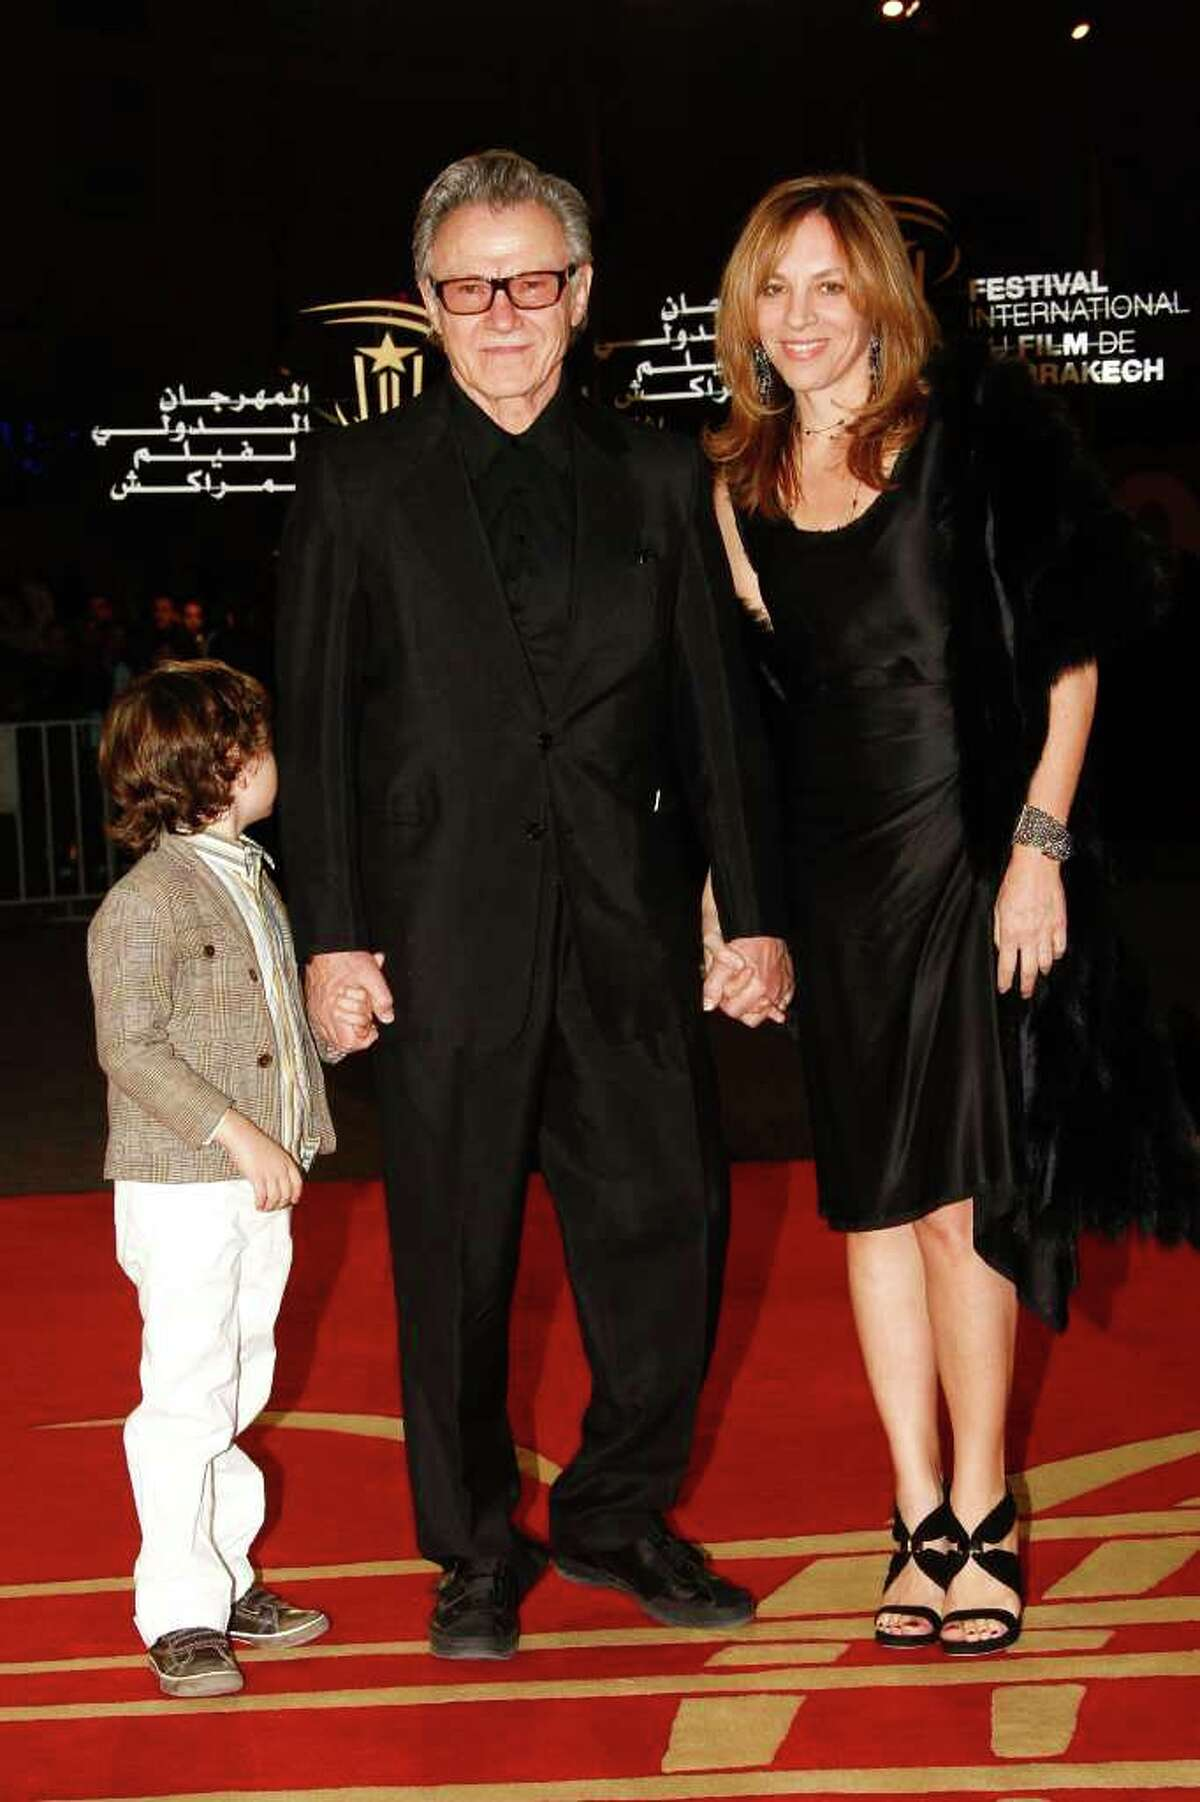 Us actor Harvey Keitel, center, arrives with his wife Daphna Kastner and son Roman, left, on the family arrival for a tribute to the American actor's career at the 10th Marrakech International Film Festival in Marrakech, Morocco, Wednesday Dec. 8, 2010. The Festival runs through Dec. 3-11. (AP Photo/Abdeljalil Bounhar)